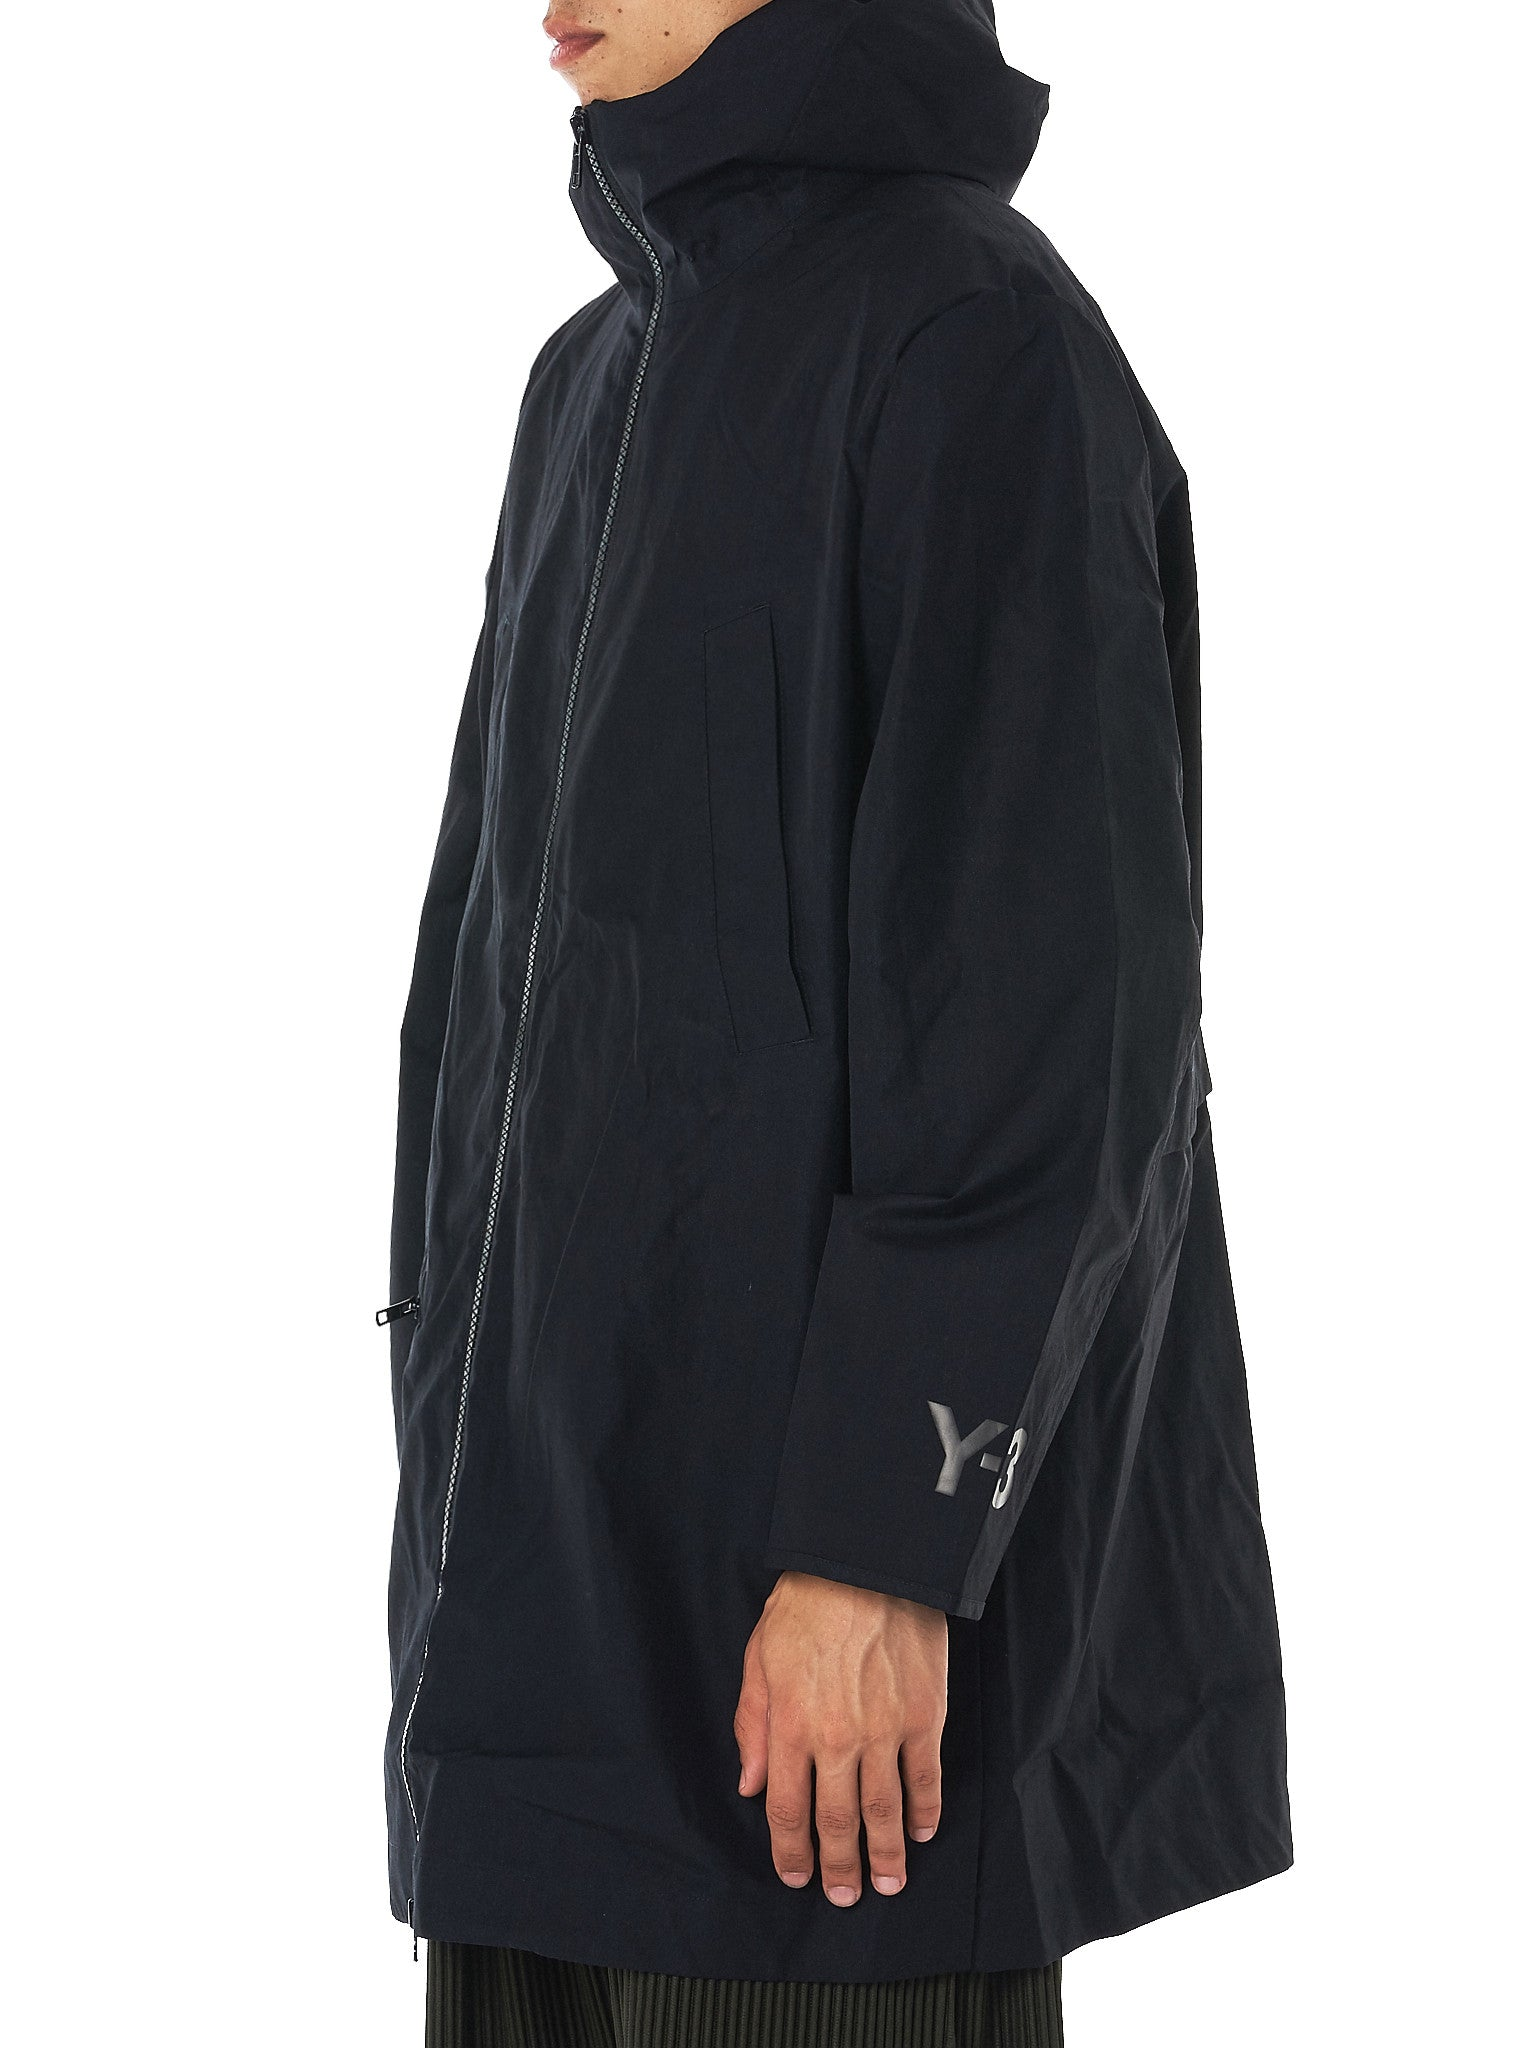 Y-3 - Hlorenzo Side View